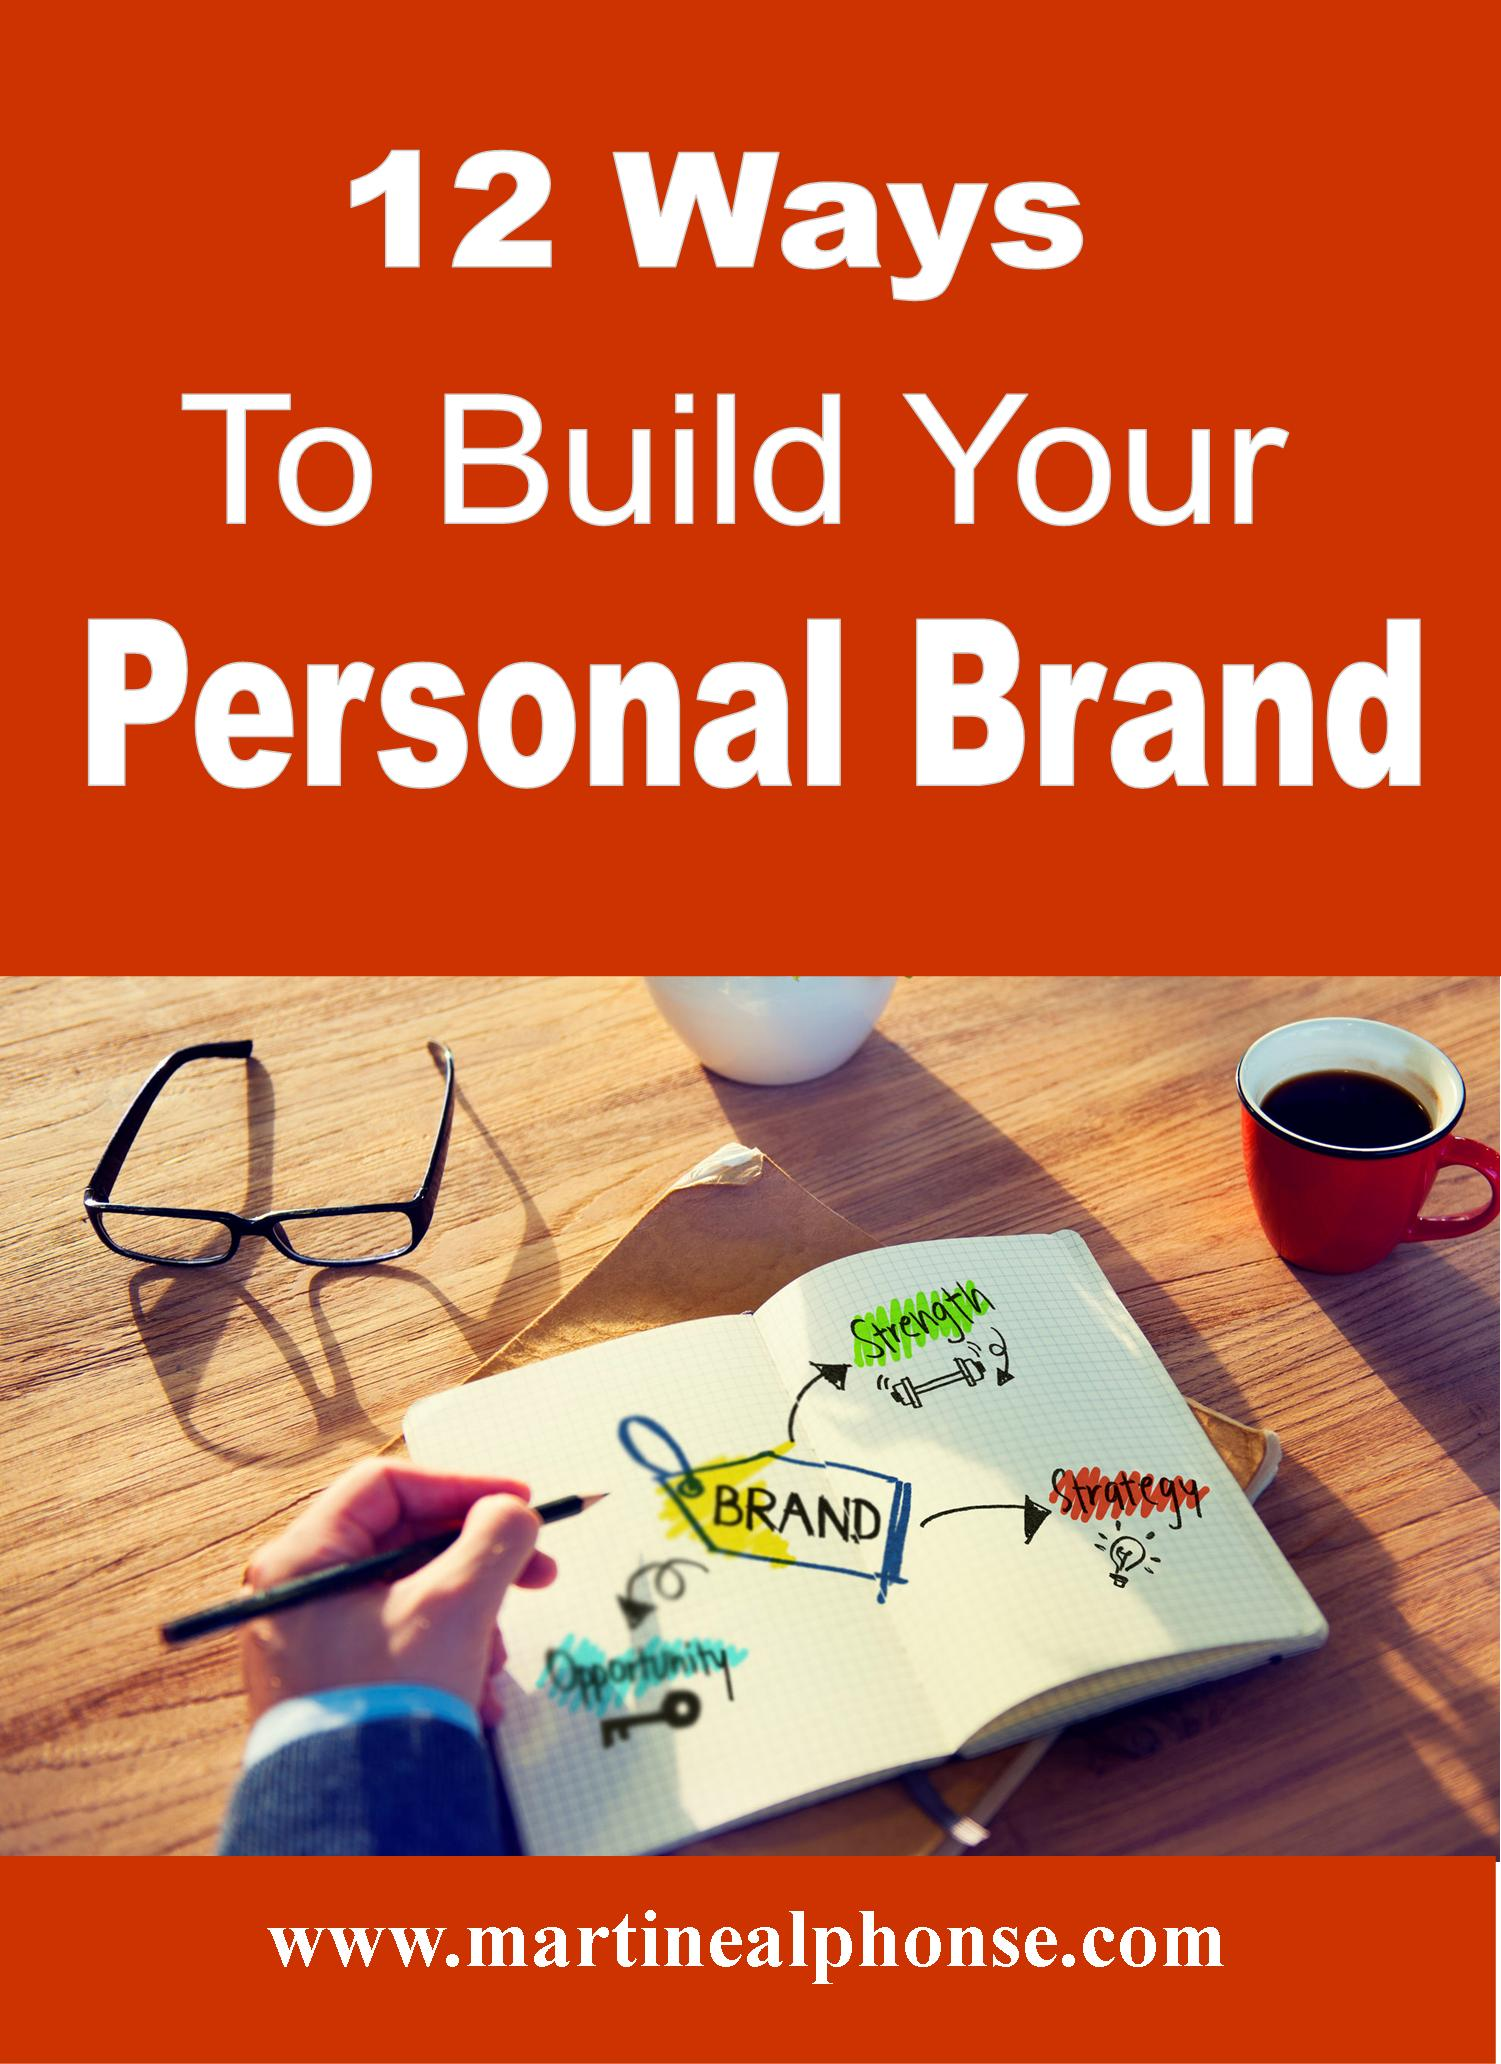 So What Does 20g Of Protein Look Like: 12 Ways To Build Your Personal Brand